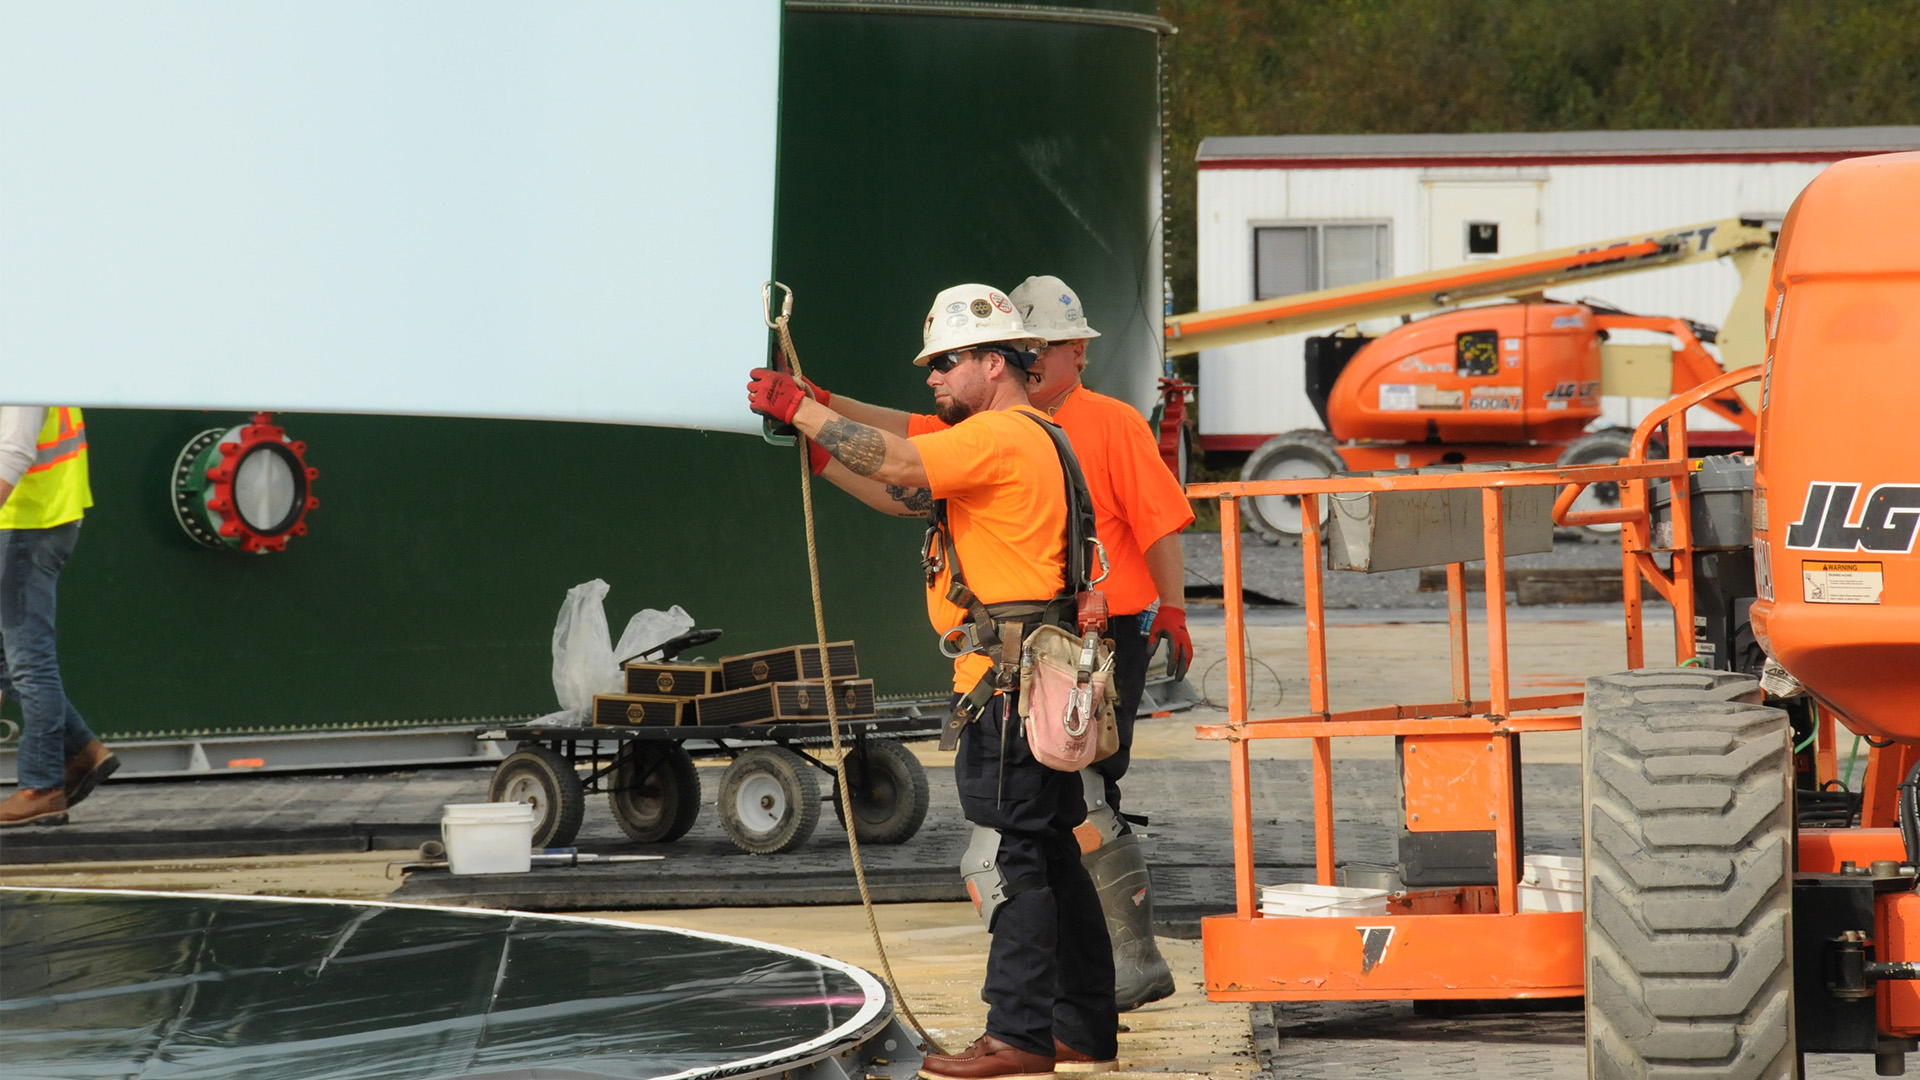 Comtech workers in Coudersport, PA; workers wearing bright clothing, orange, yellow vest; holding big piece of DYNA Tank